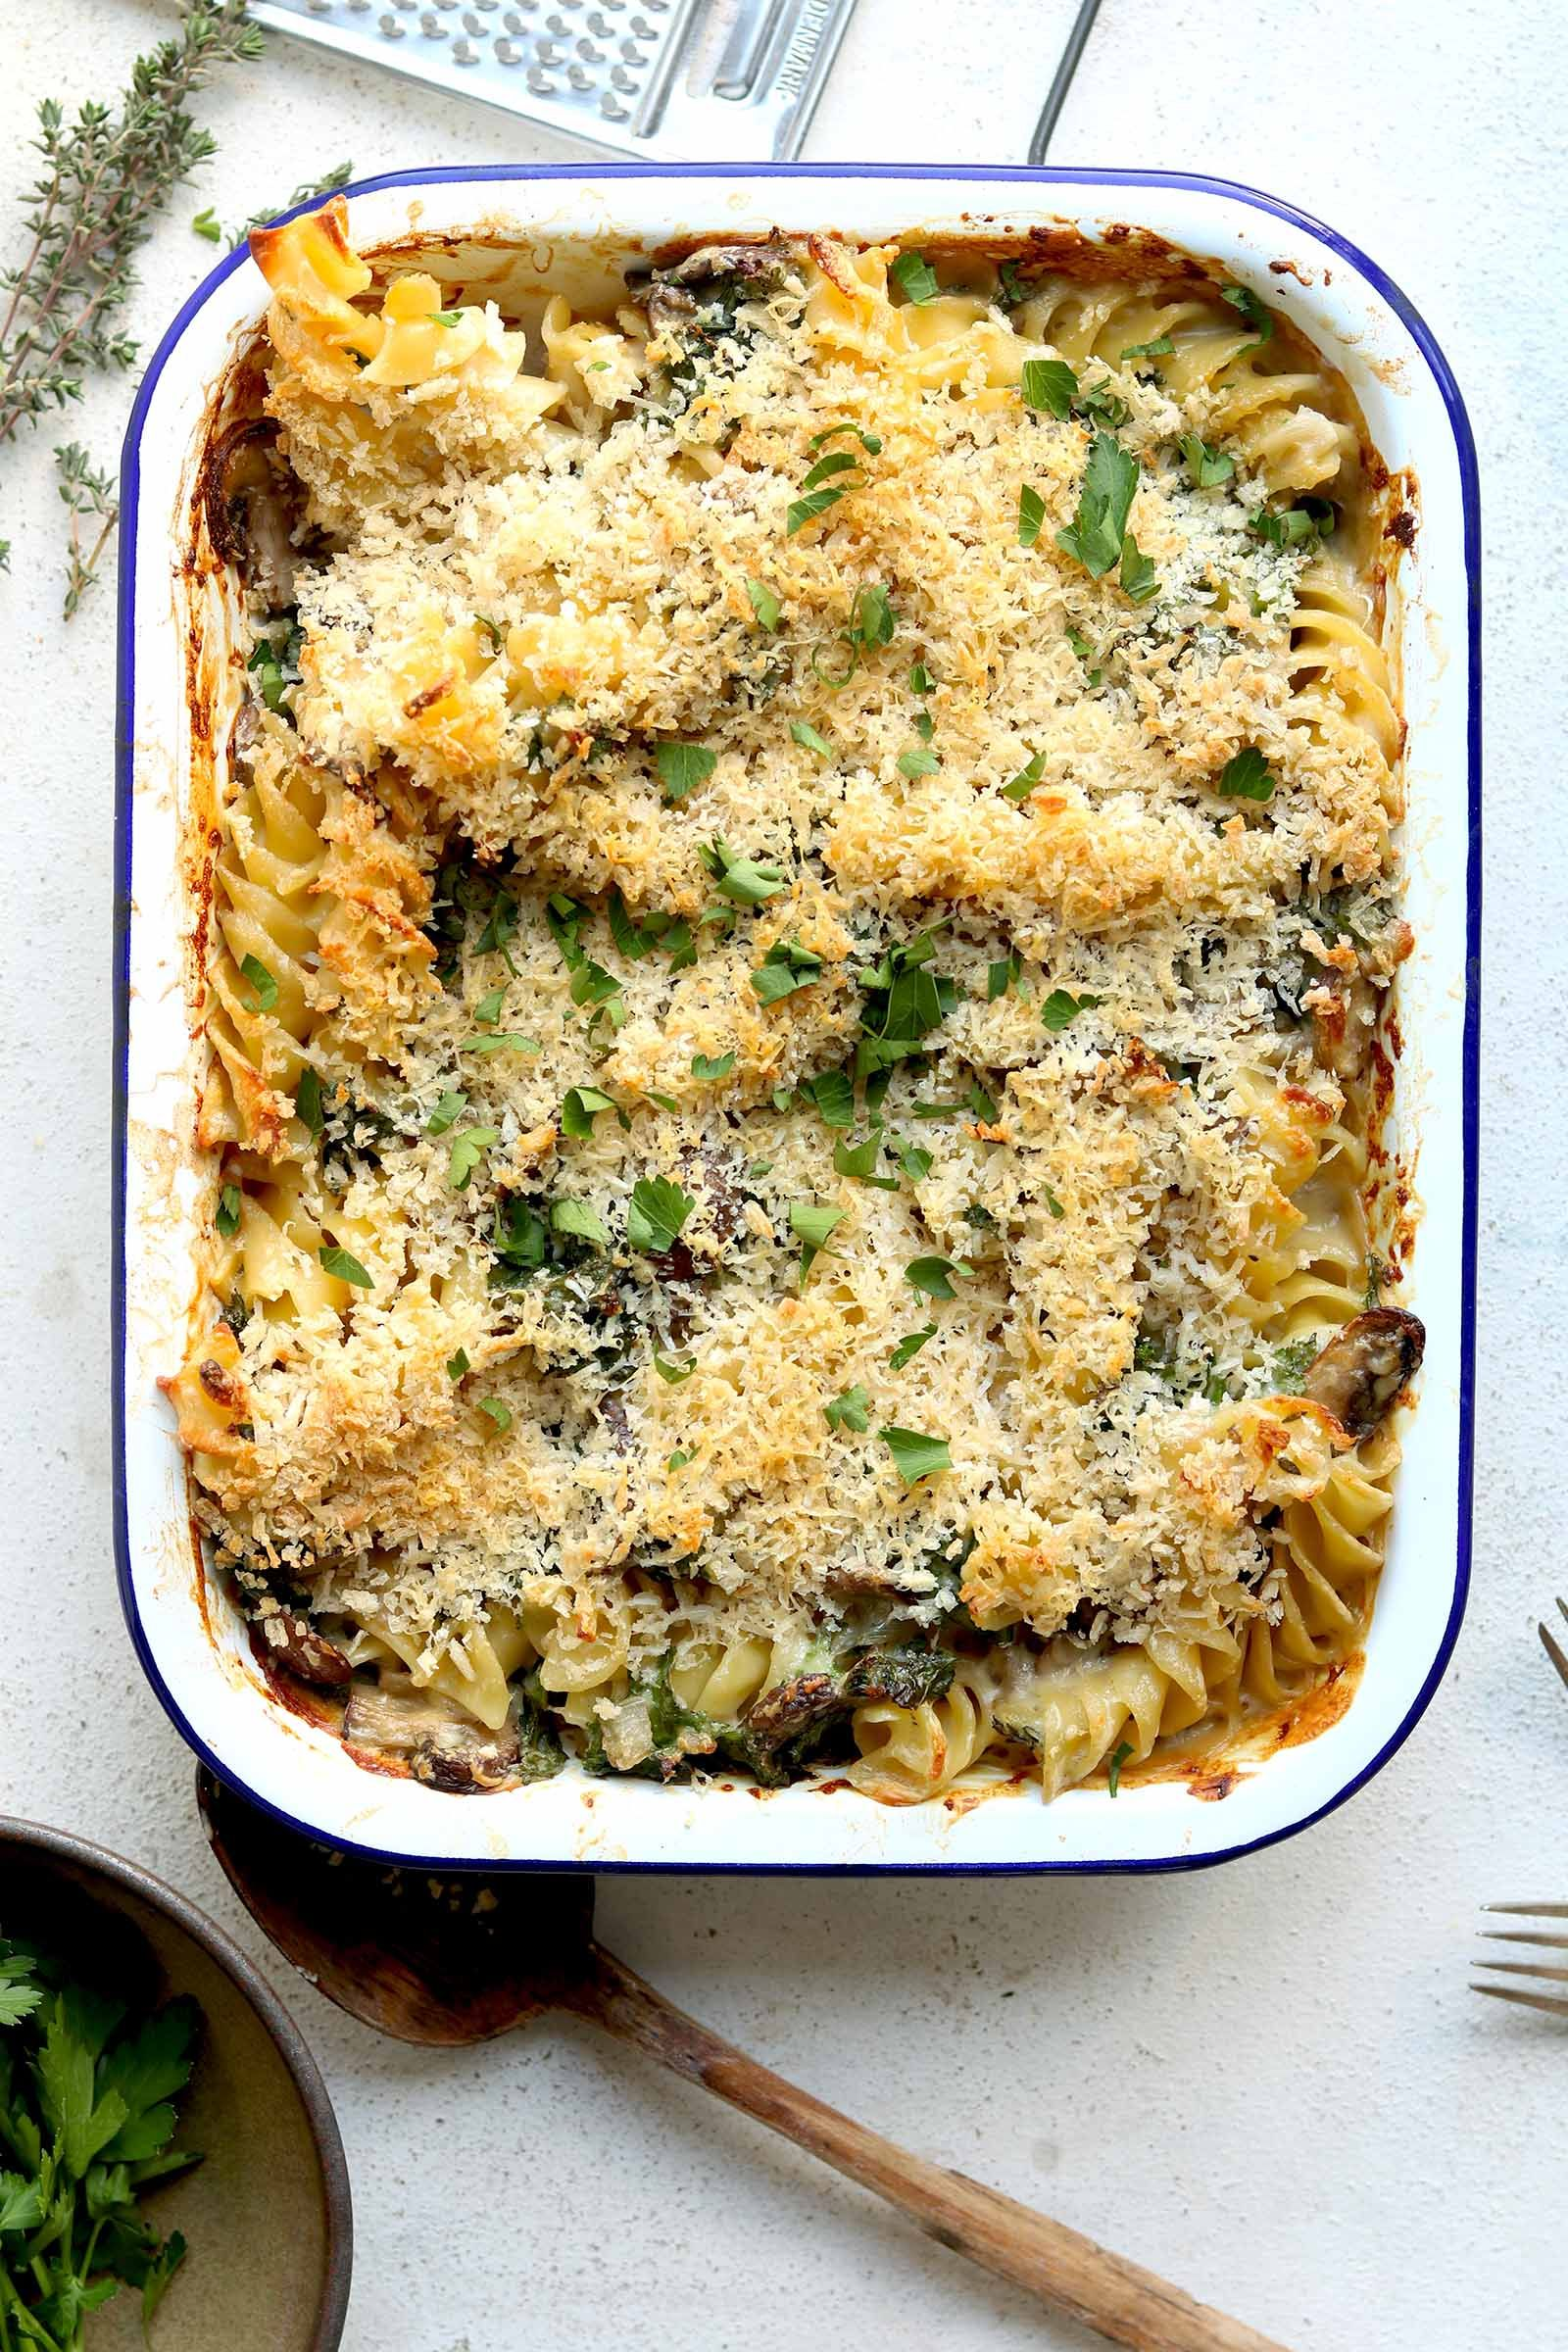 Creamy Kale Mushroom Pasta Bake Mushroom Pasta Bake Dinner Recipes Easy Quick Lunch Recipes Healthy